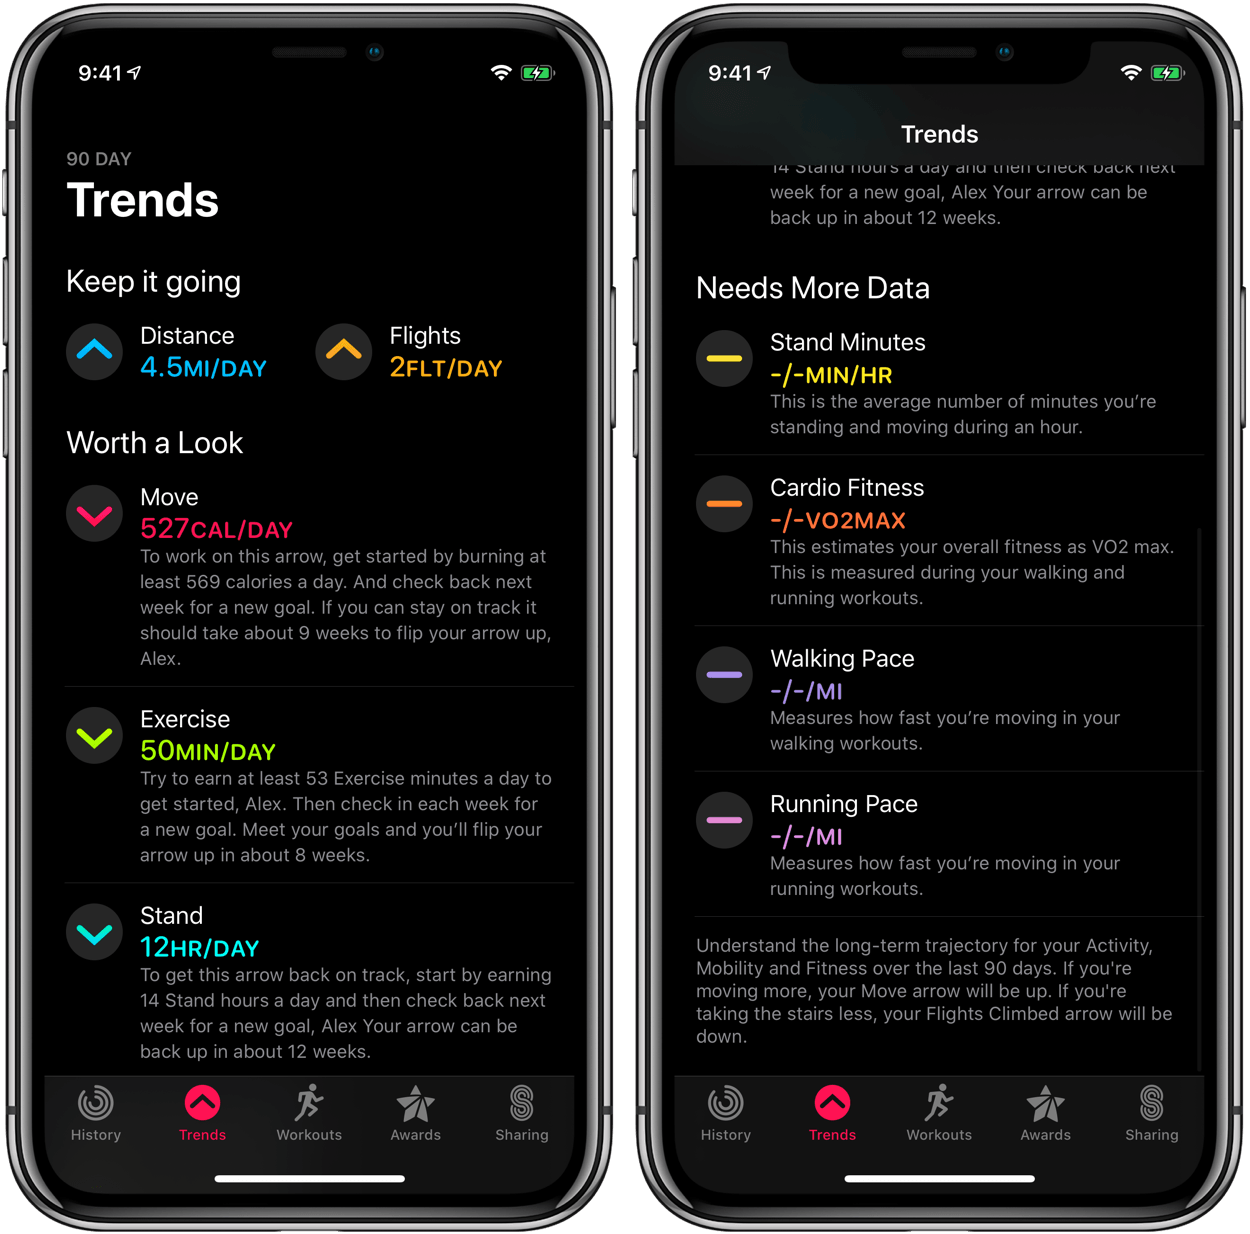 Activity Trends in iOS 13